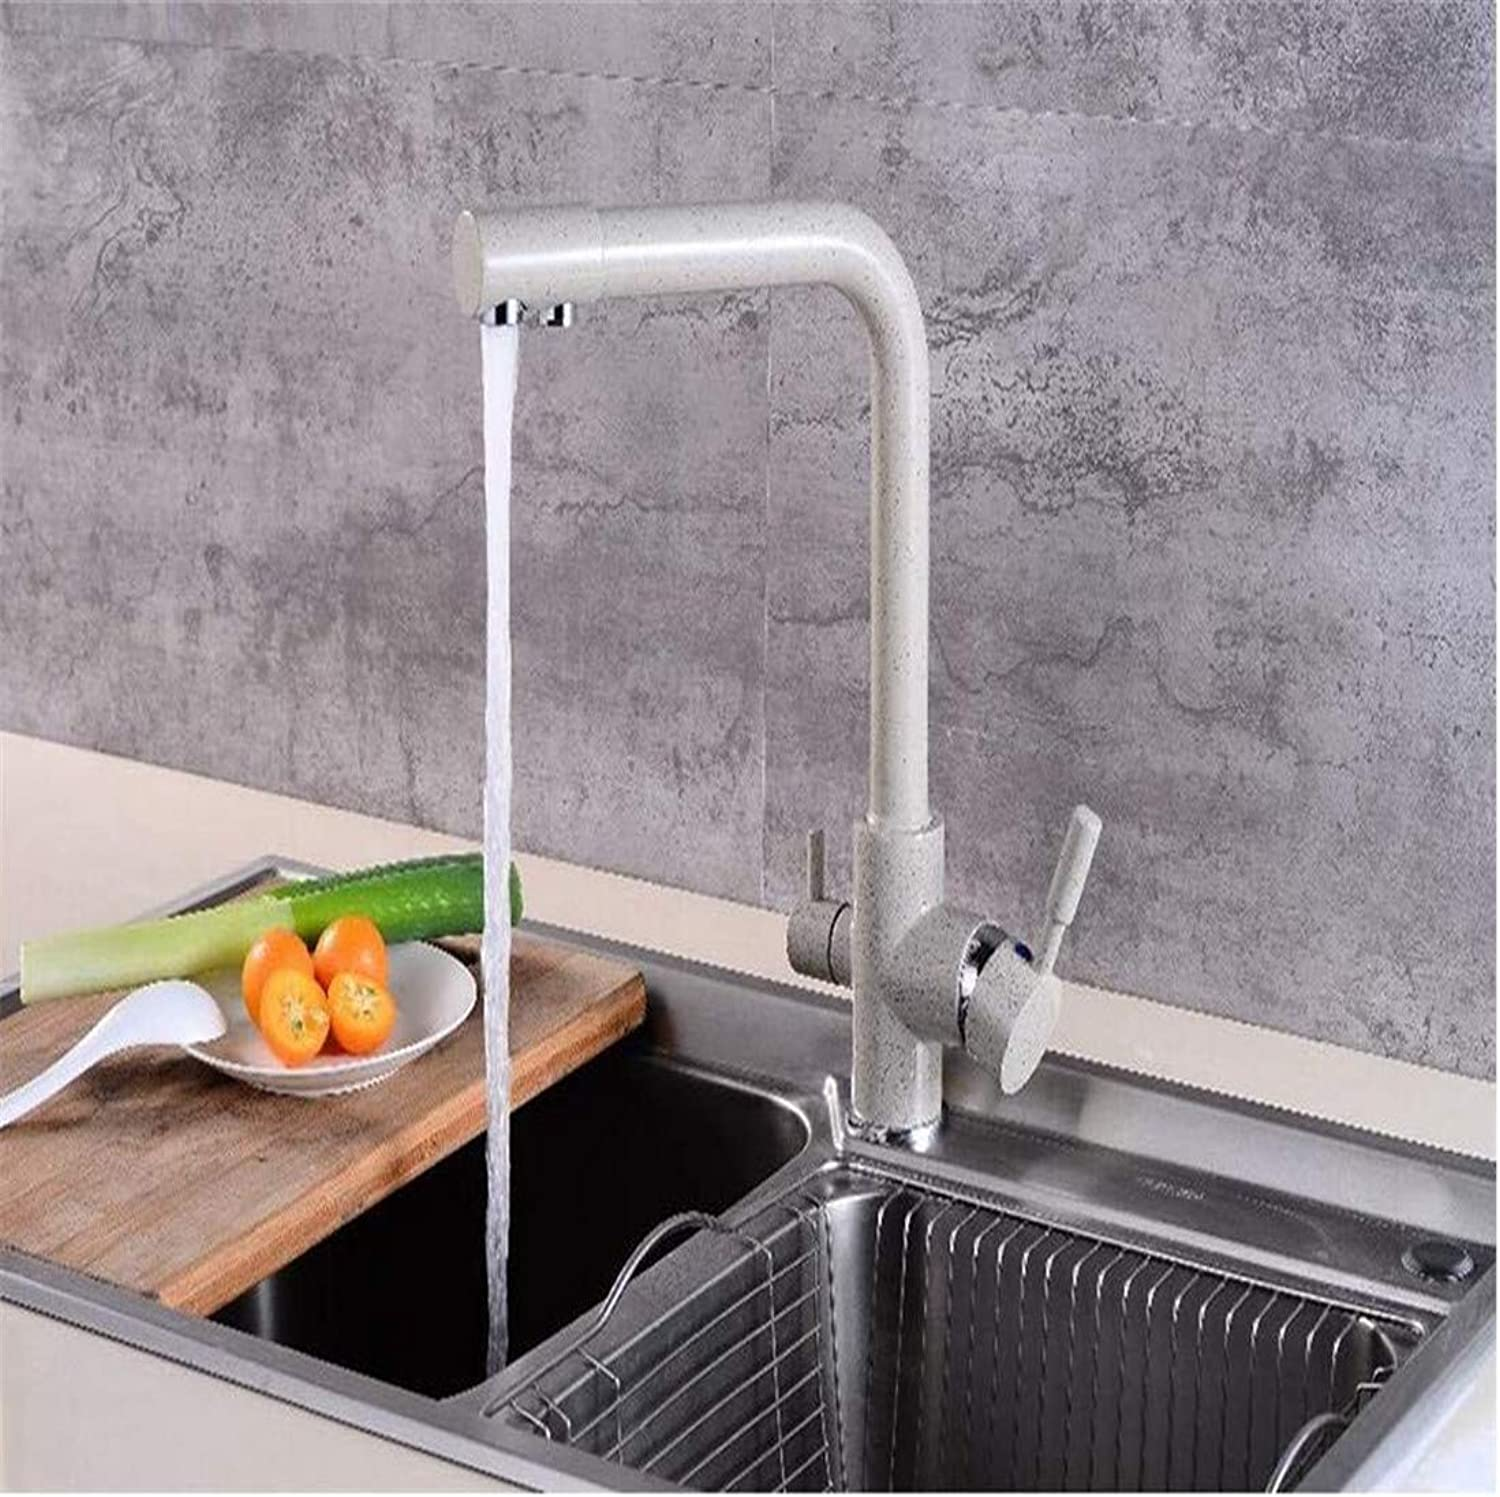 Brass Chrome Vintage Stainless Steel Taps 360 Swivel Brass Kitchen Faucets Deck Mounted Mixer Tap Water Filter